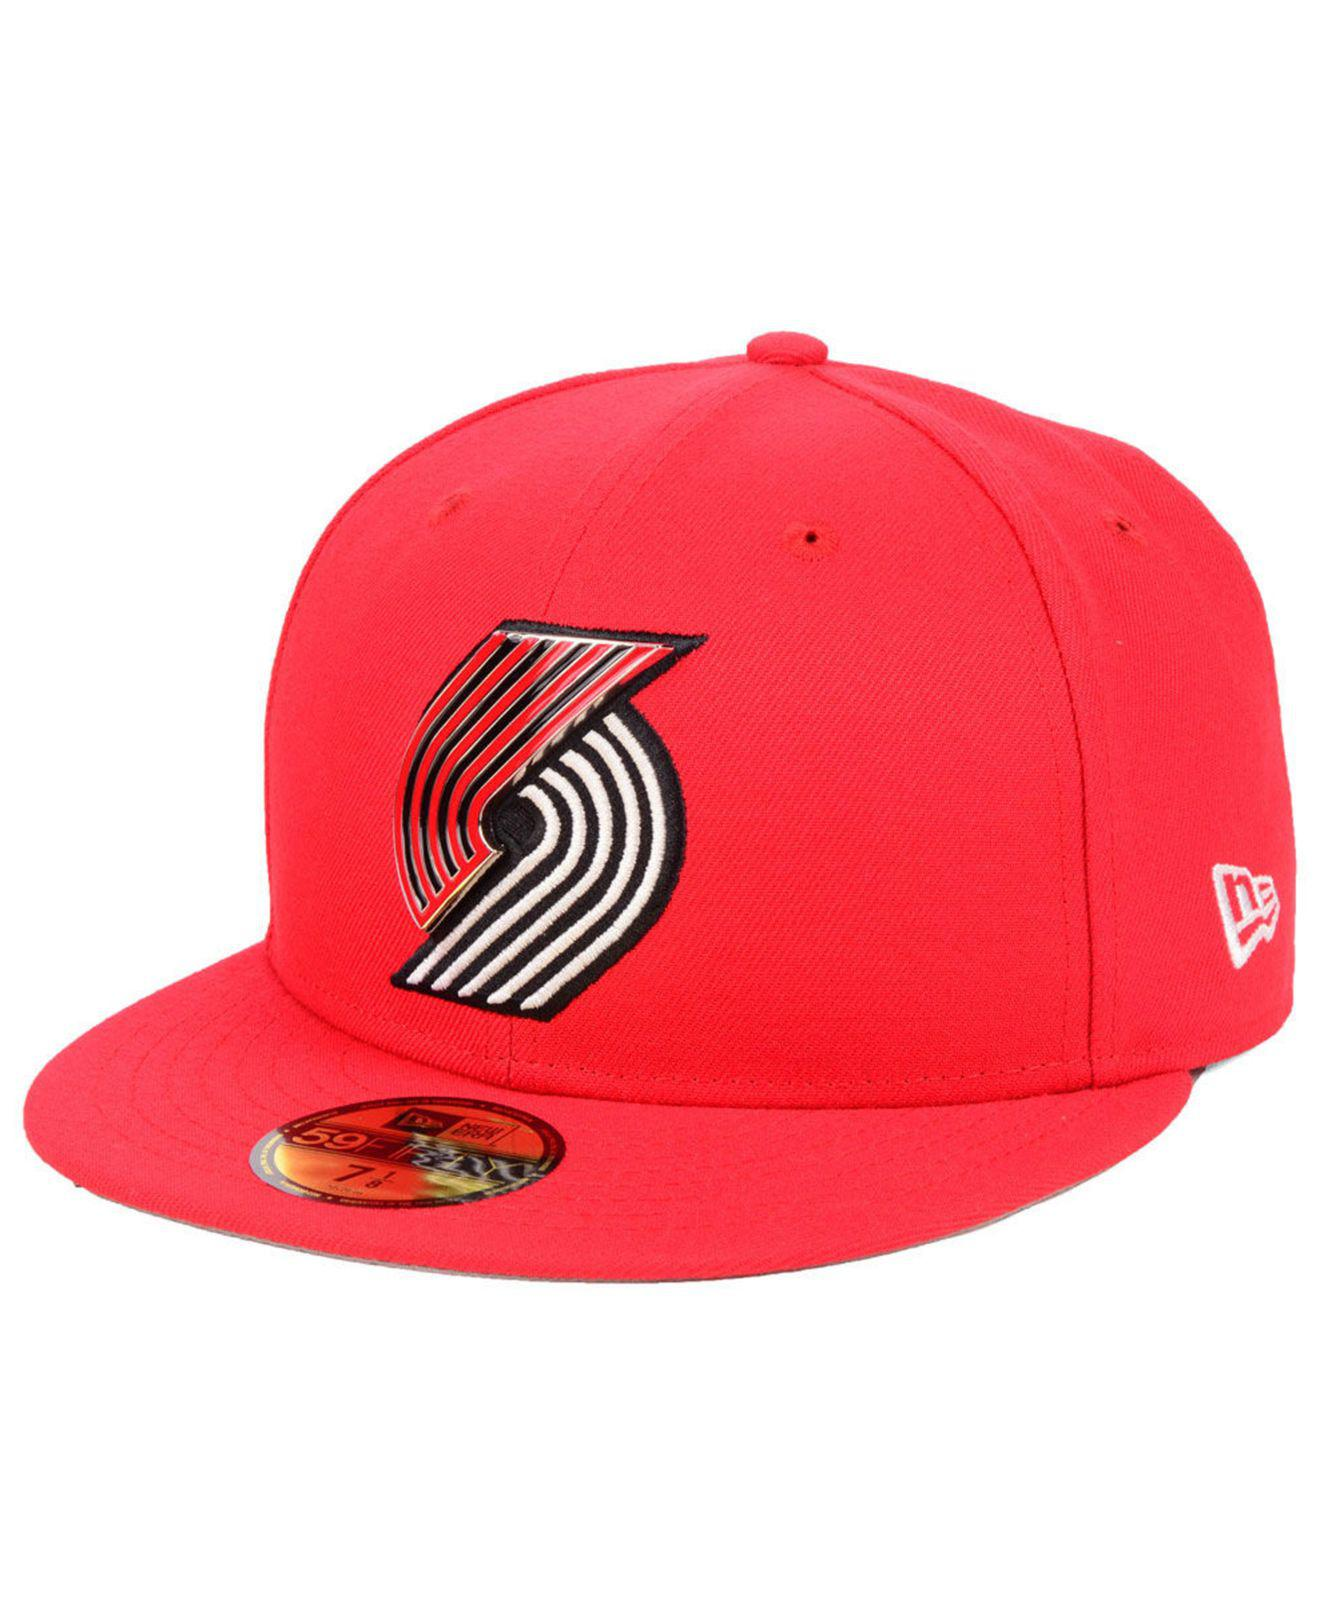 Lyst - Ktz Portland Trail Blazers Metal Mash Up 59fifty-fitted Cap ... 3a37d7e10557